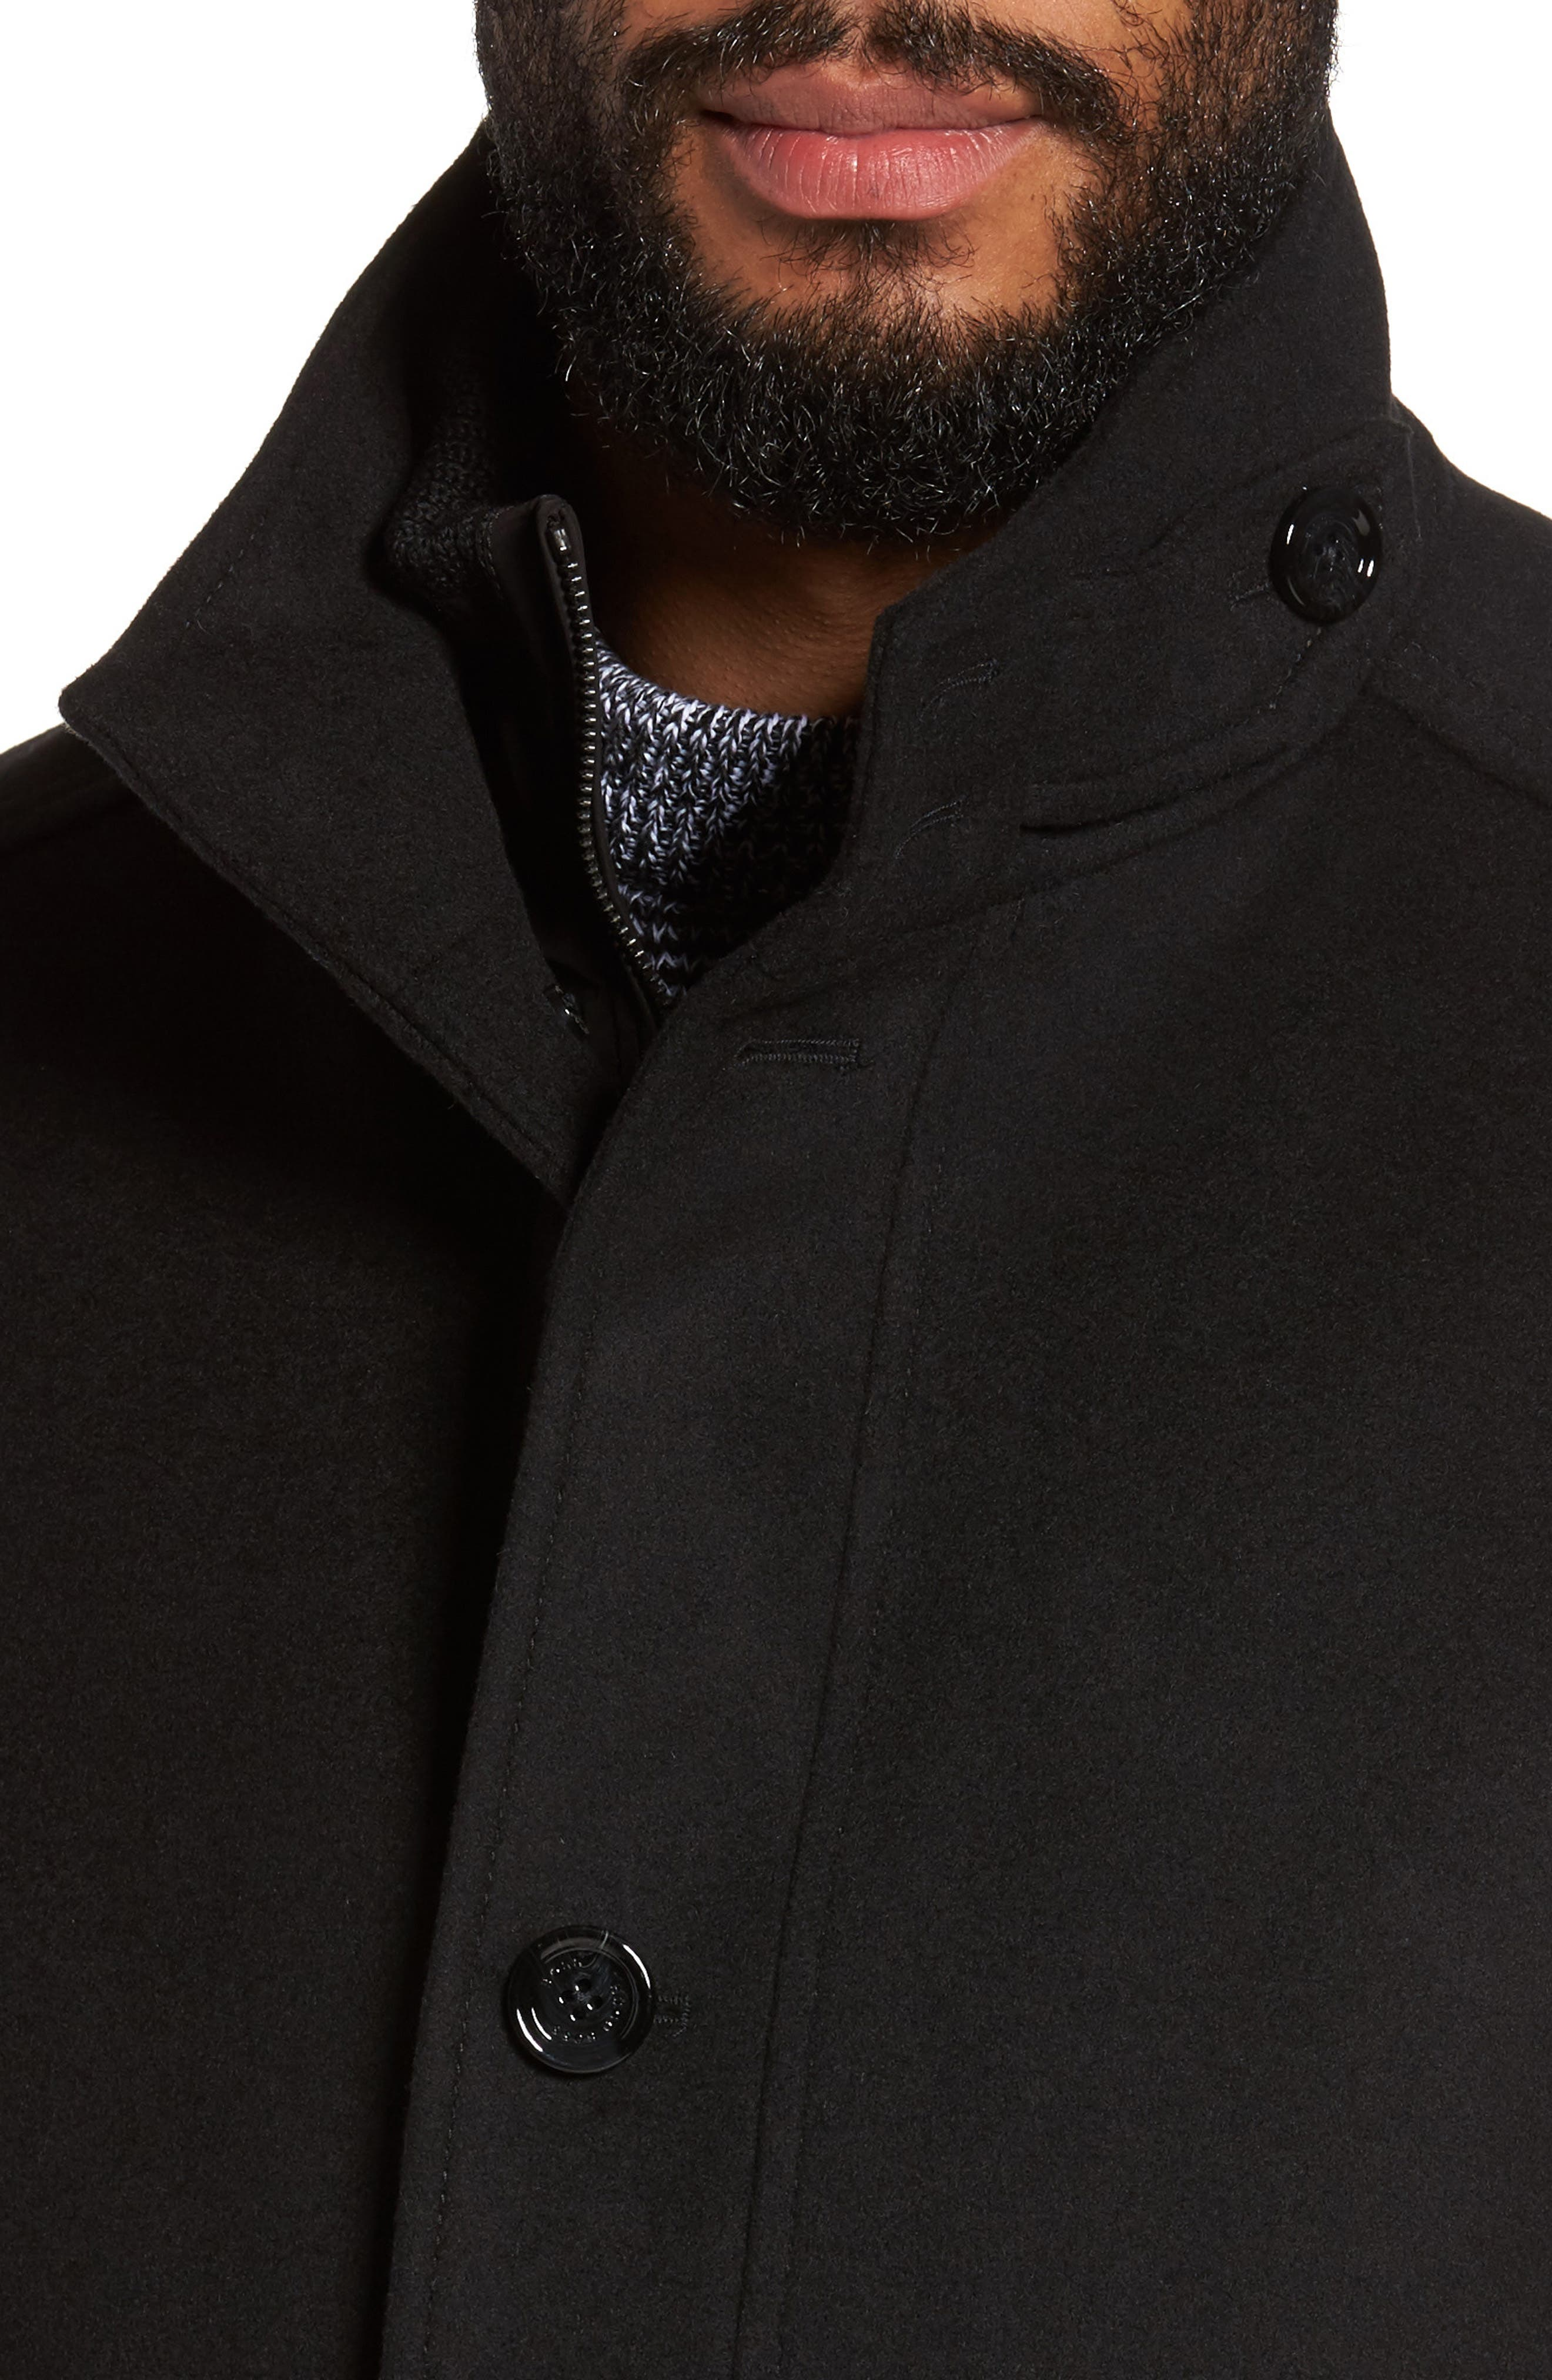 C-Coxtan Wool Blend Coat with Insert,                             Alternate thumbnail 4, color,                             Black